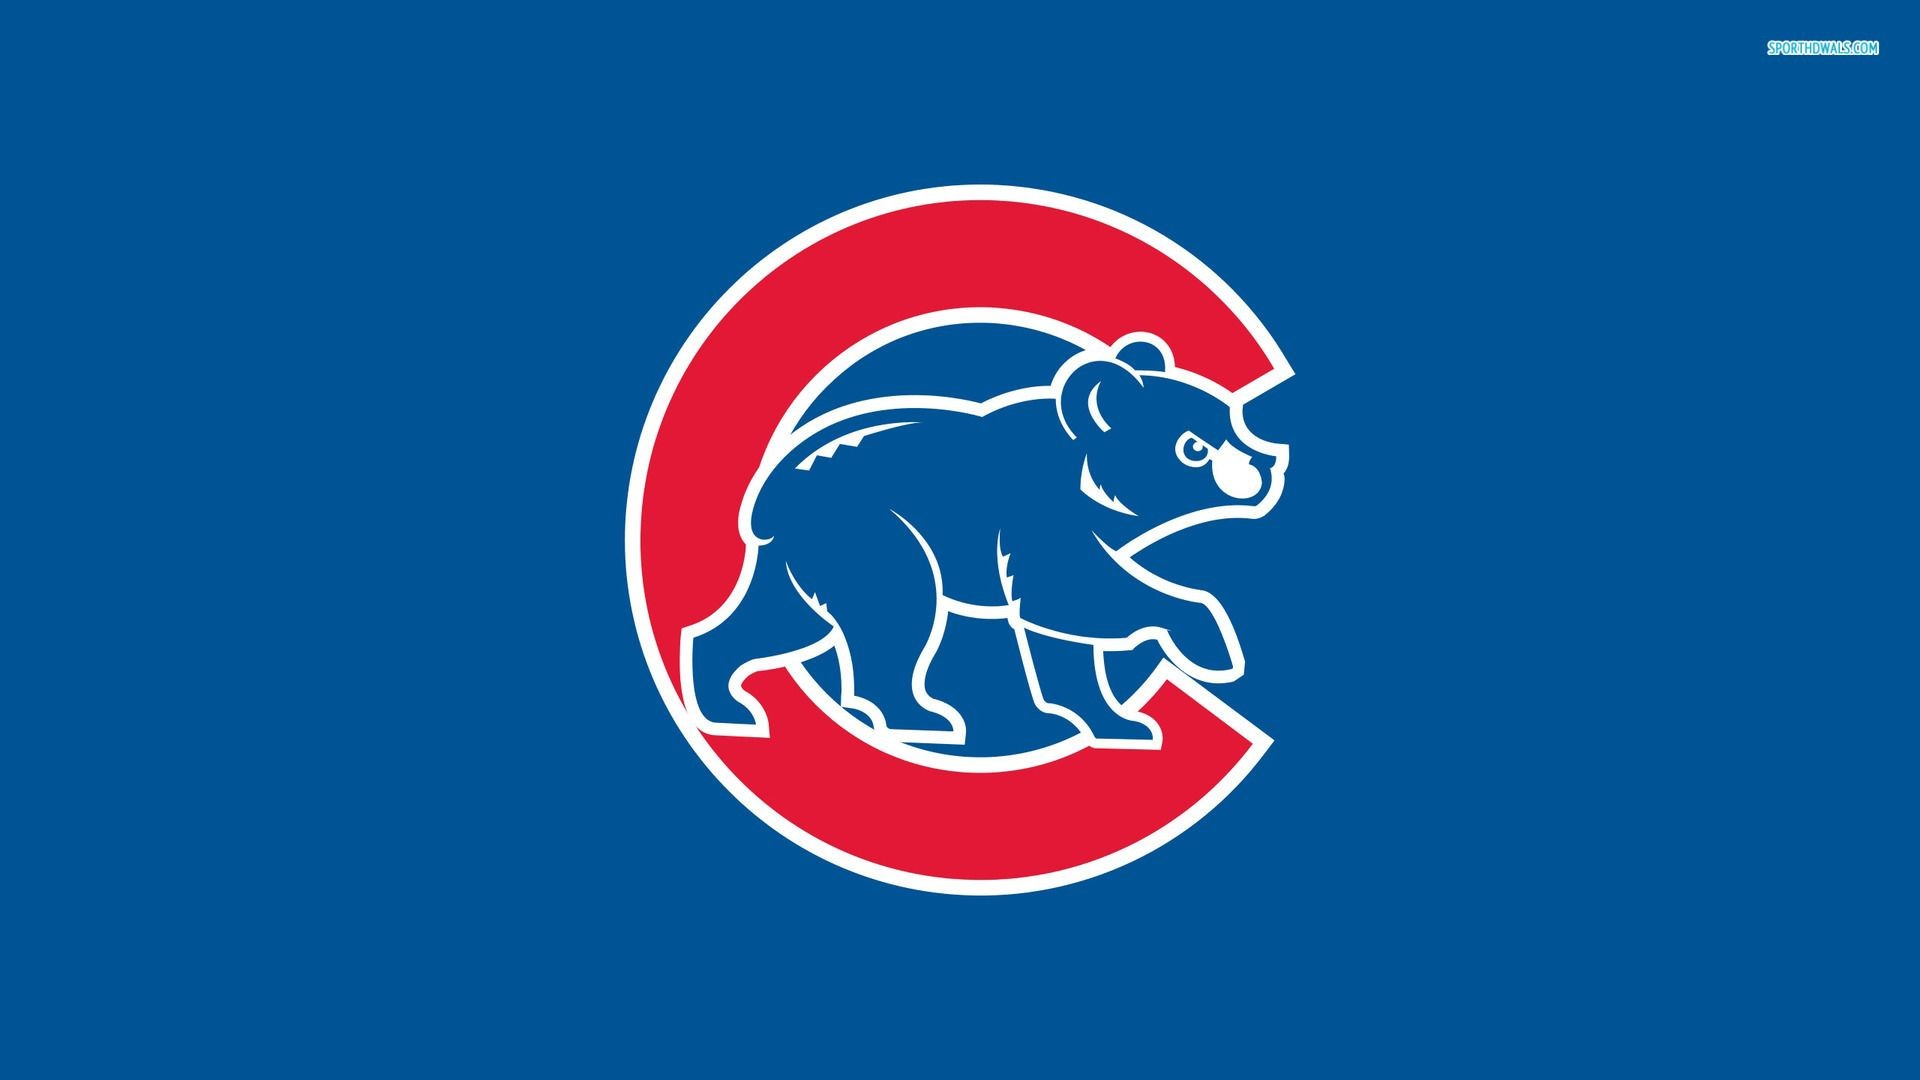 1920x1080 Chicago Cubs Wallpapers - Wallpaper Cave